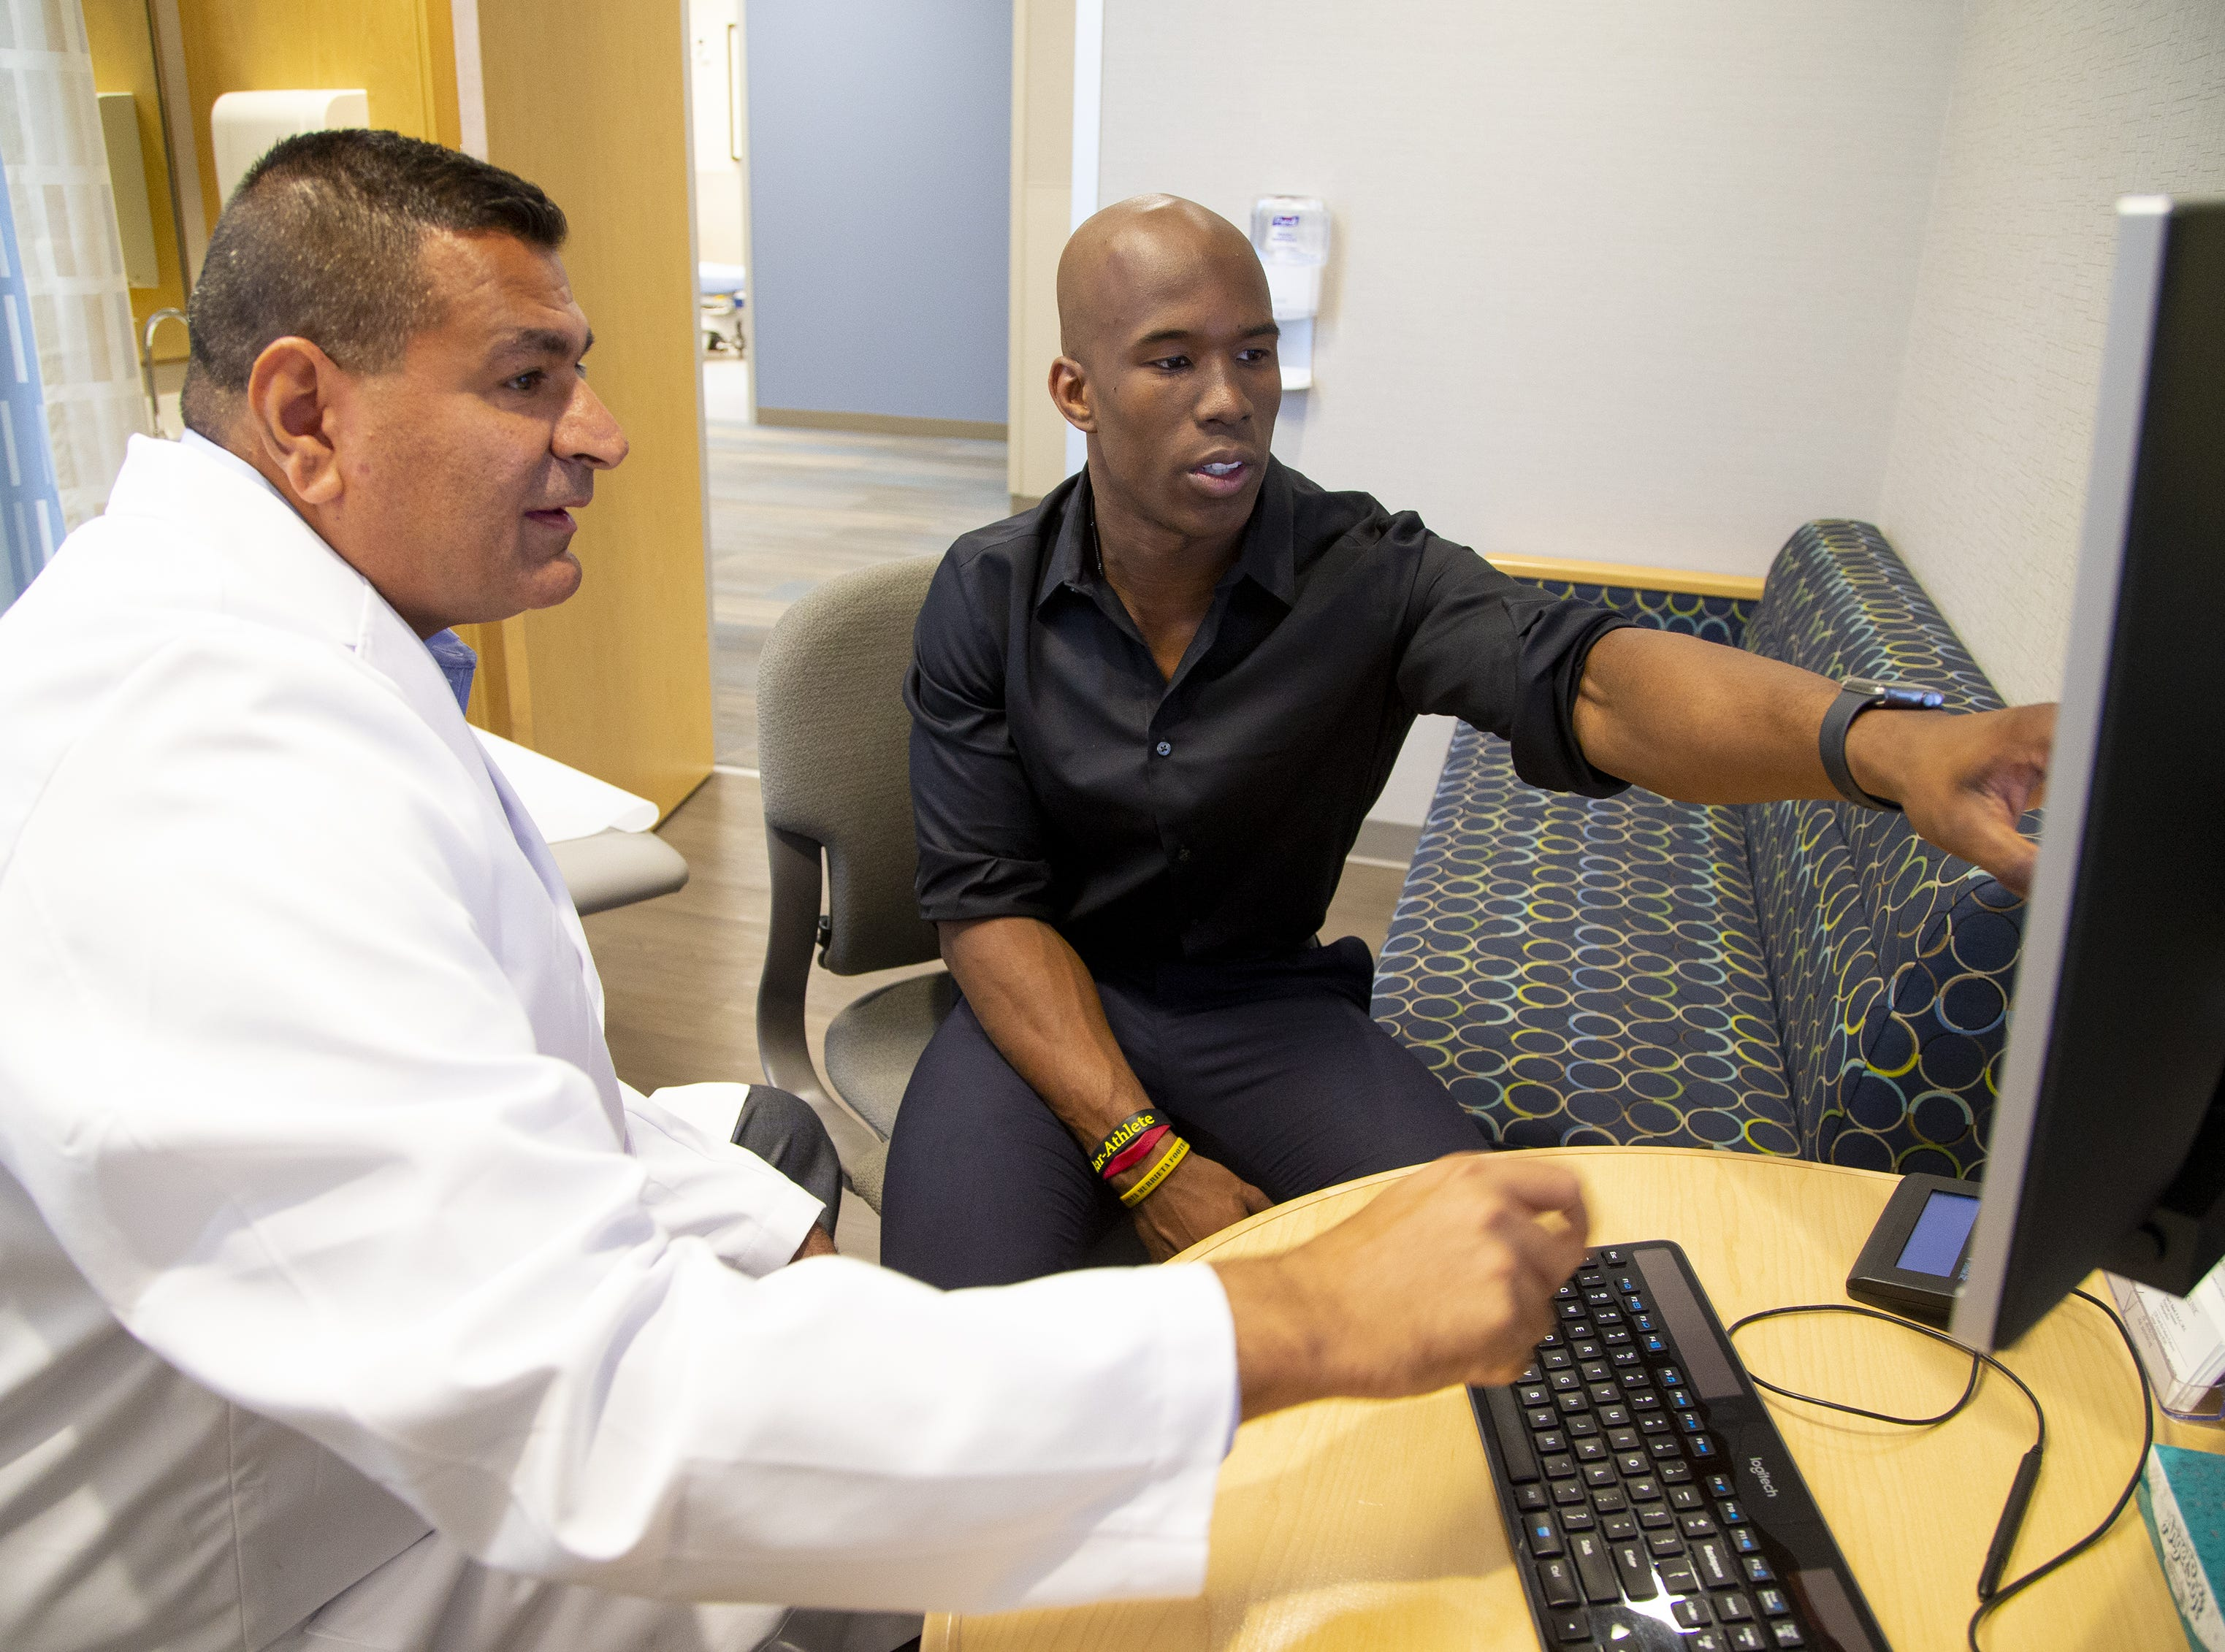 ASU football wide receiver Kyle Williams was introduced to Dr. Anikar Chhabra, director of sports medicine at Mayo Clinic and ASU team physician, after an injury. Williams prepares for his own career in medicine assisting Chhabra in his research.